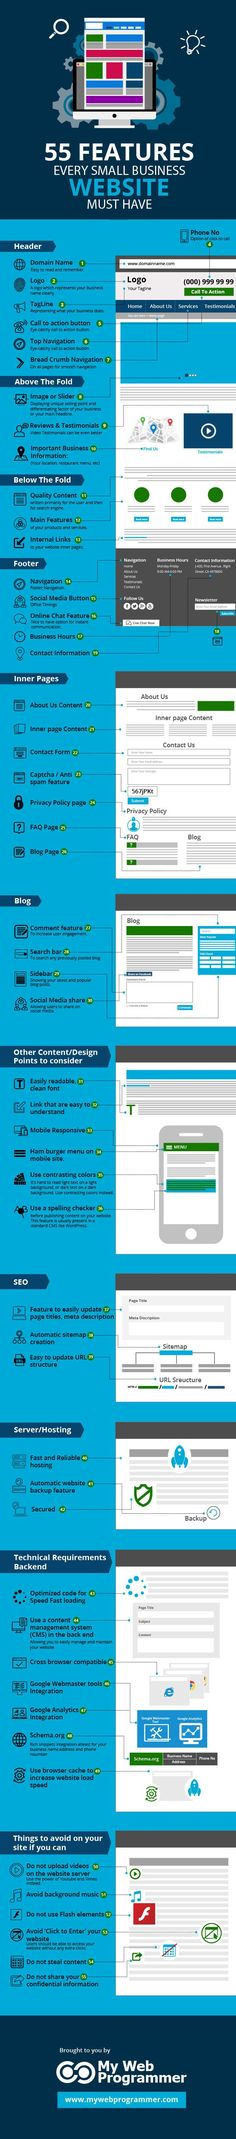 Website Features Checklist: 55 Steps to Web Design Success Infographic - Wix Website Ideas - DIY your own website with Wix. - Website Features Checklist: 55 Steps to Web Design Success in 2019 [Infographic] Marketing Website, Marketing Services, Seo Services, Marketing En Internet, Marketing Online, Business Marketing, Seo Marketing, Content Marketing, Online Business